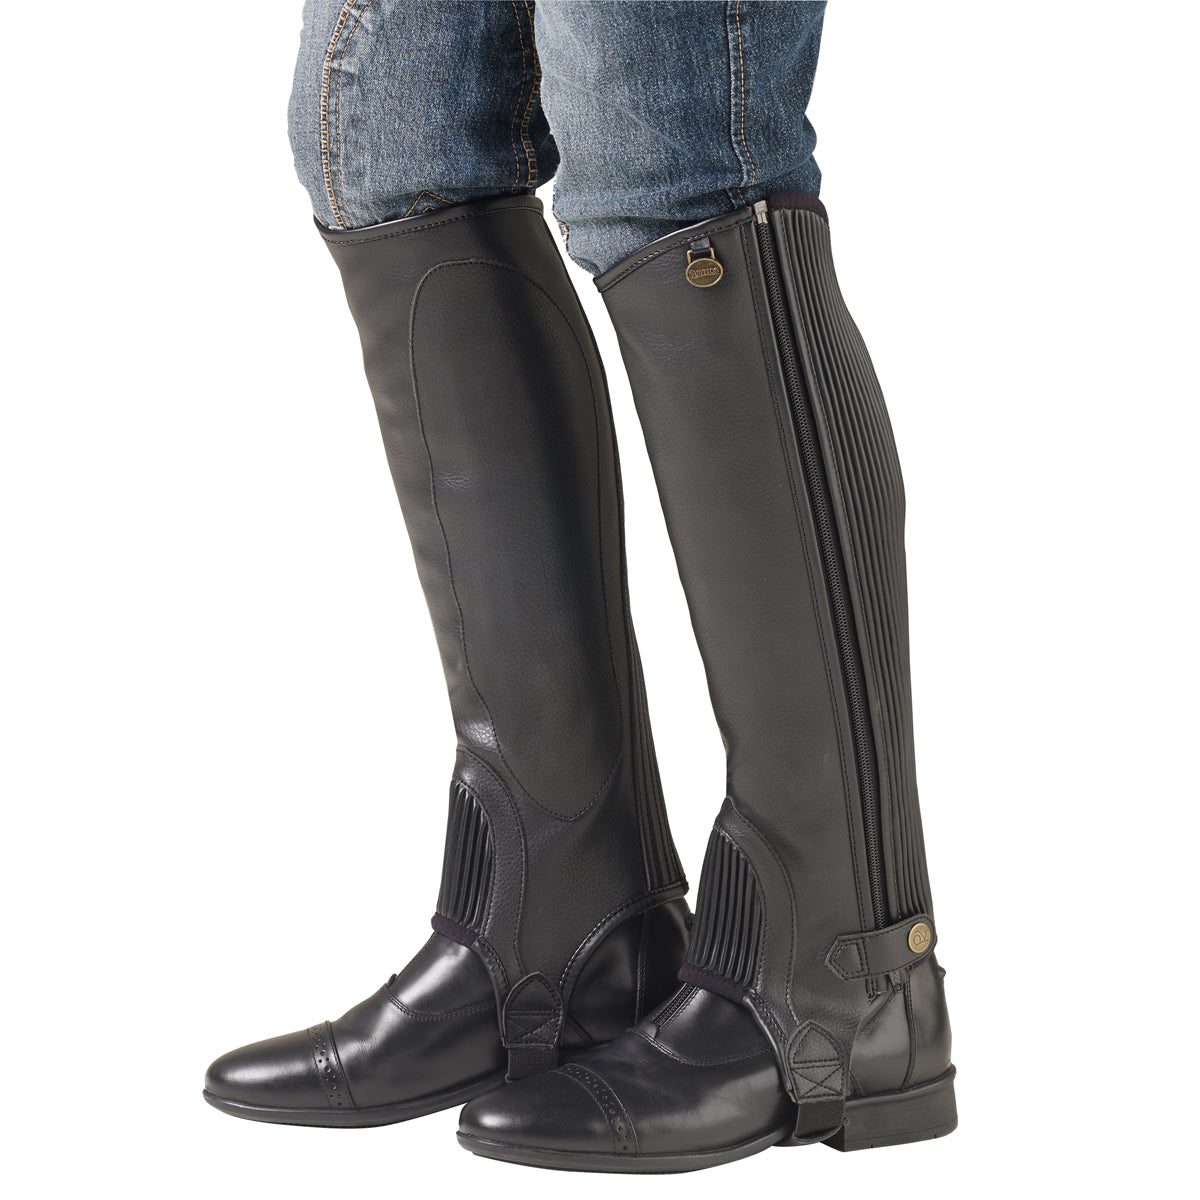 Ovation Kids' EquiStretch II Half Chaps